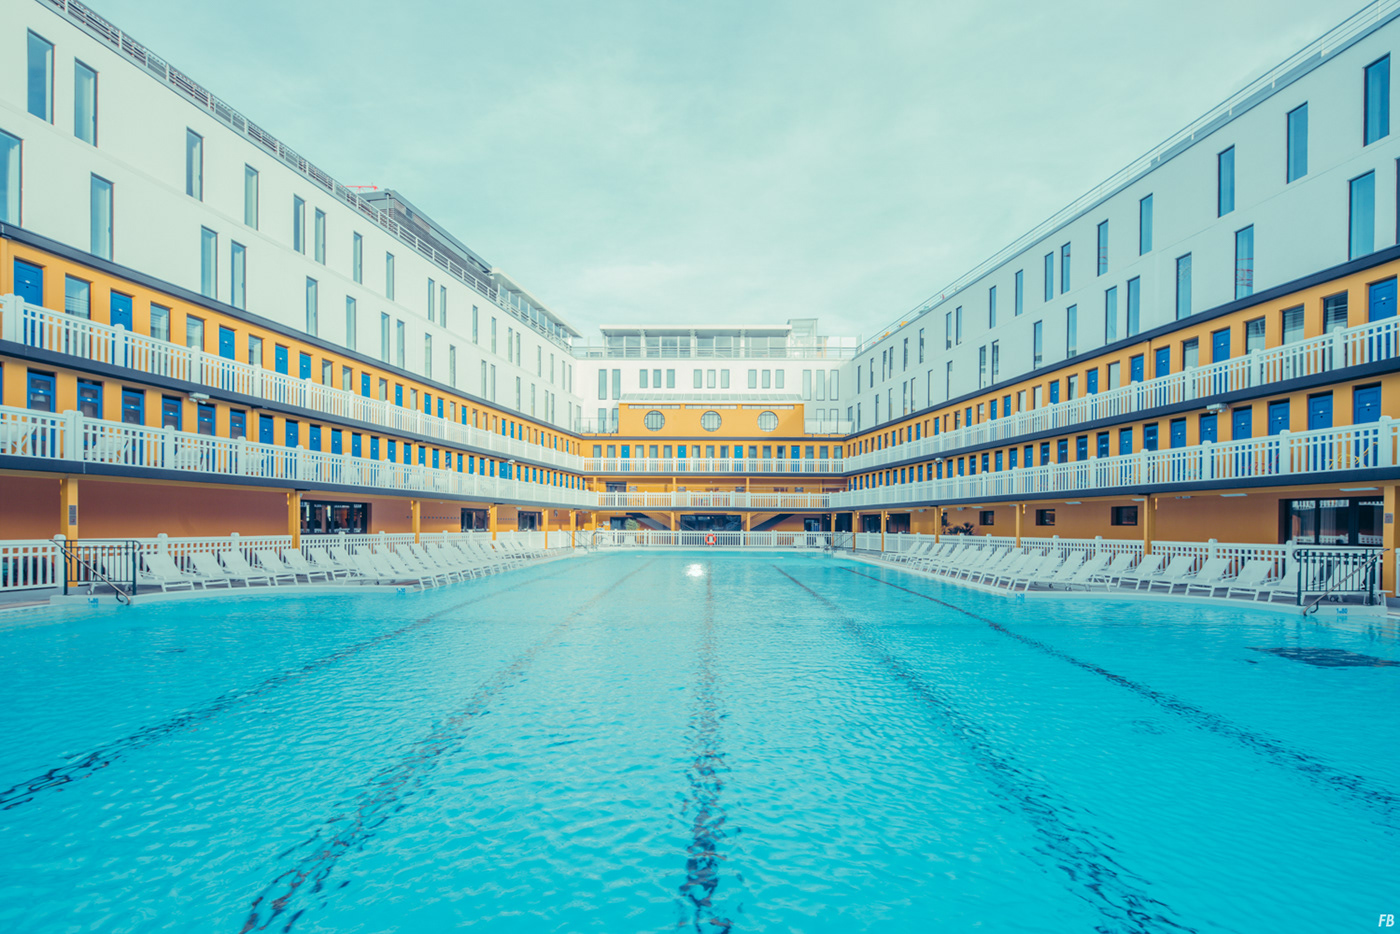 Hotel Molitor Piscine Molitor On Behance